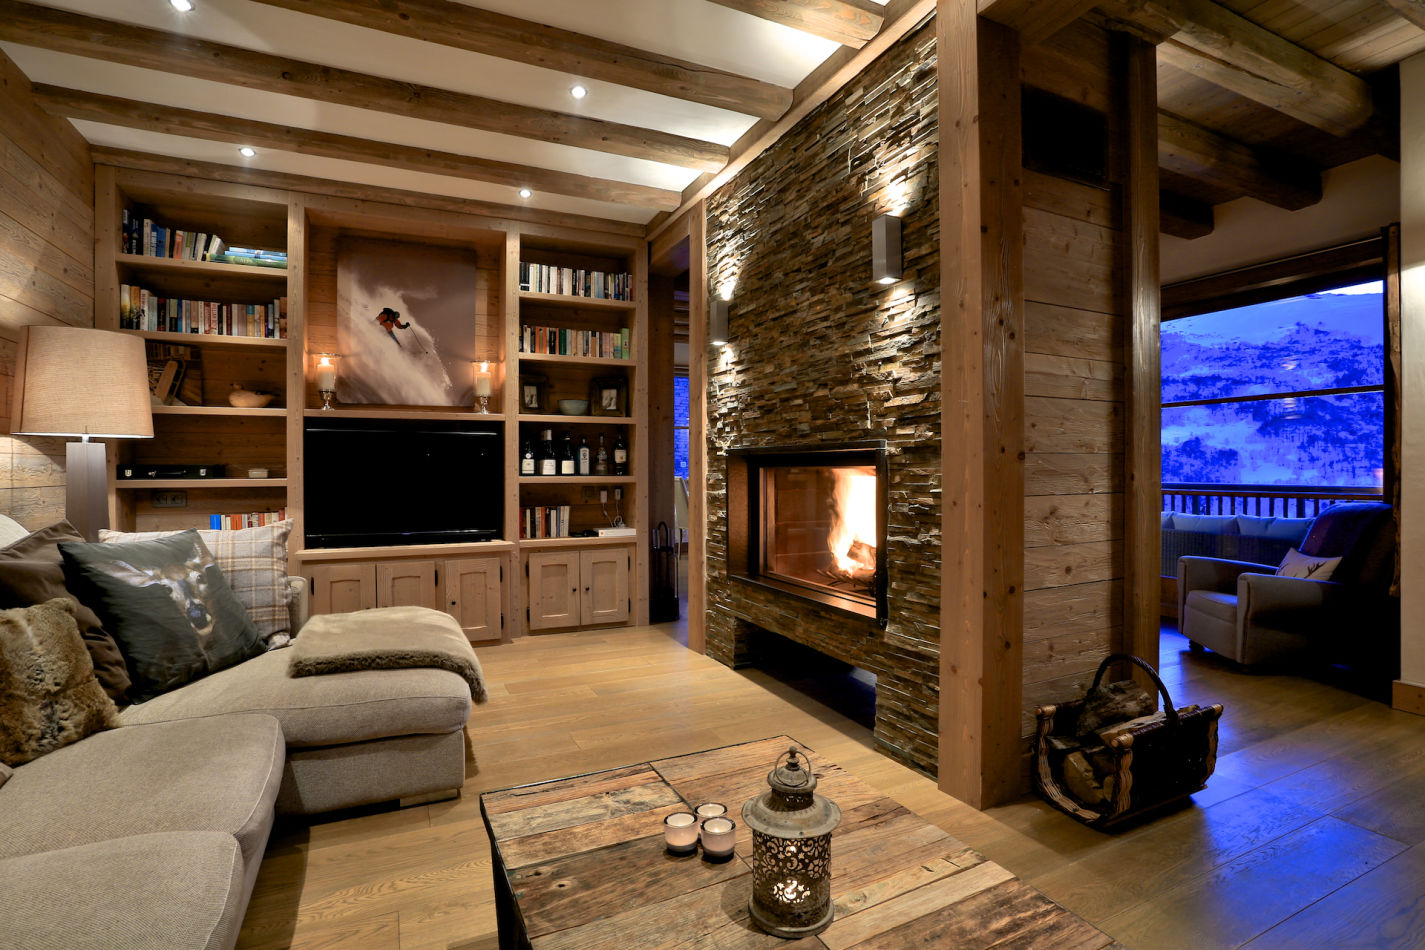 livign-room-with-fire-in-evening-image-127